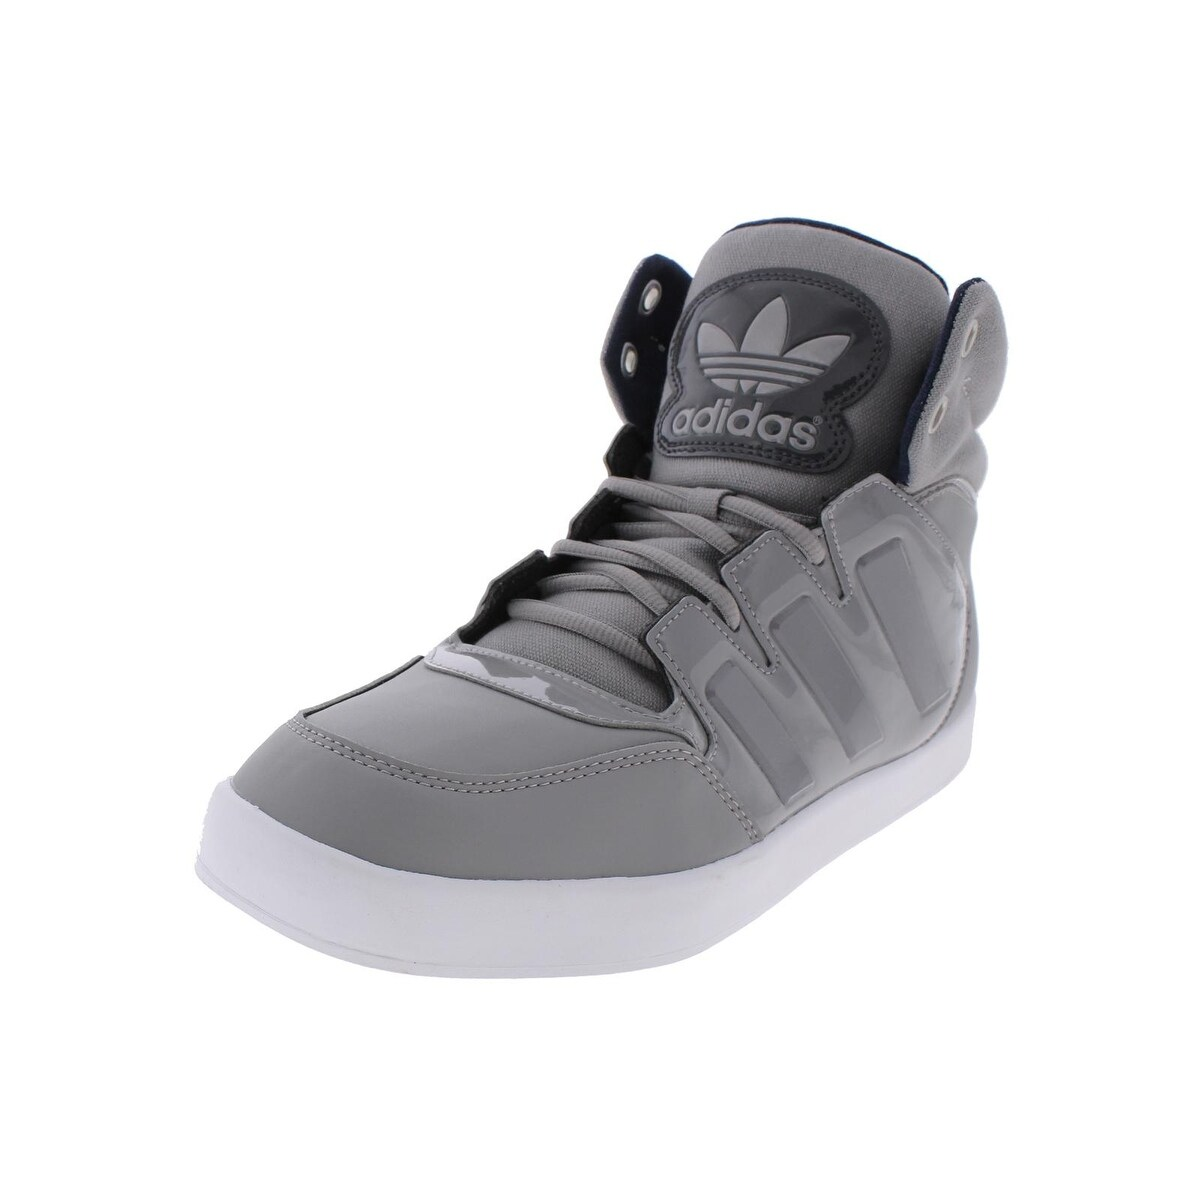 low priced 3bc68 01d92 Shop adidas Originals Mens Dropstep Athletic Shoes High Top Trainers - Free  Shipping On Orders Over 45 - Overstock - 20545978